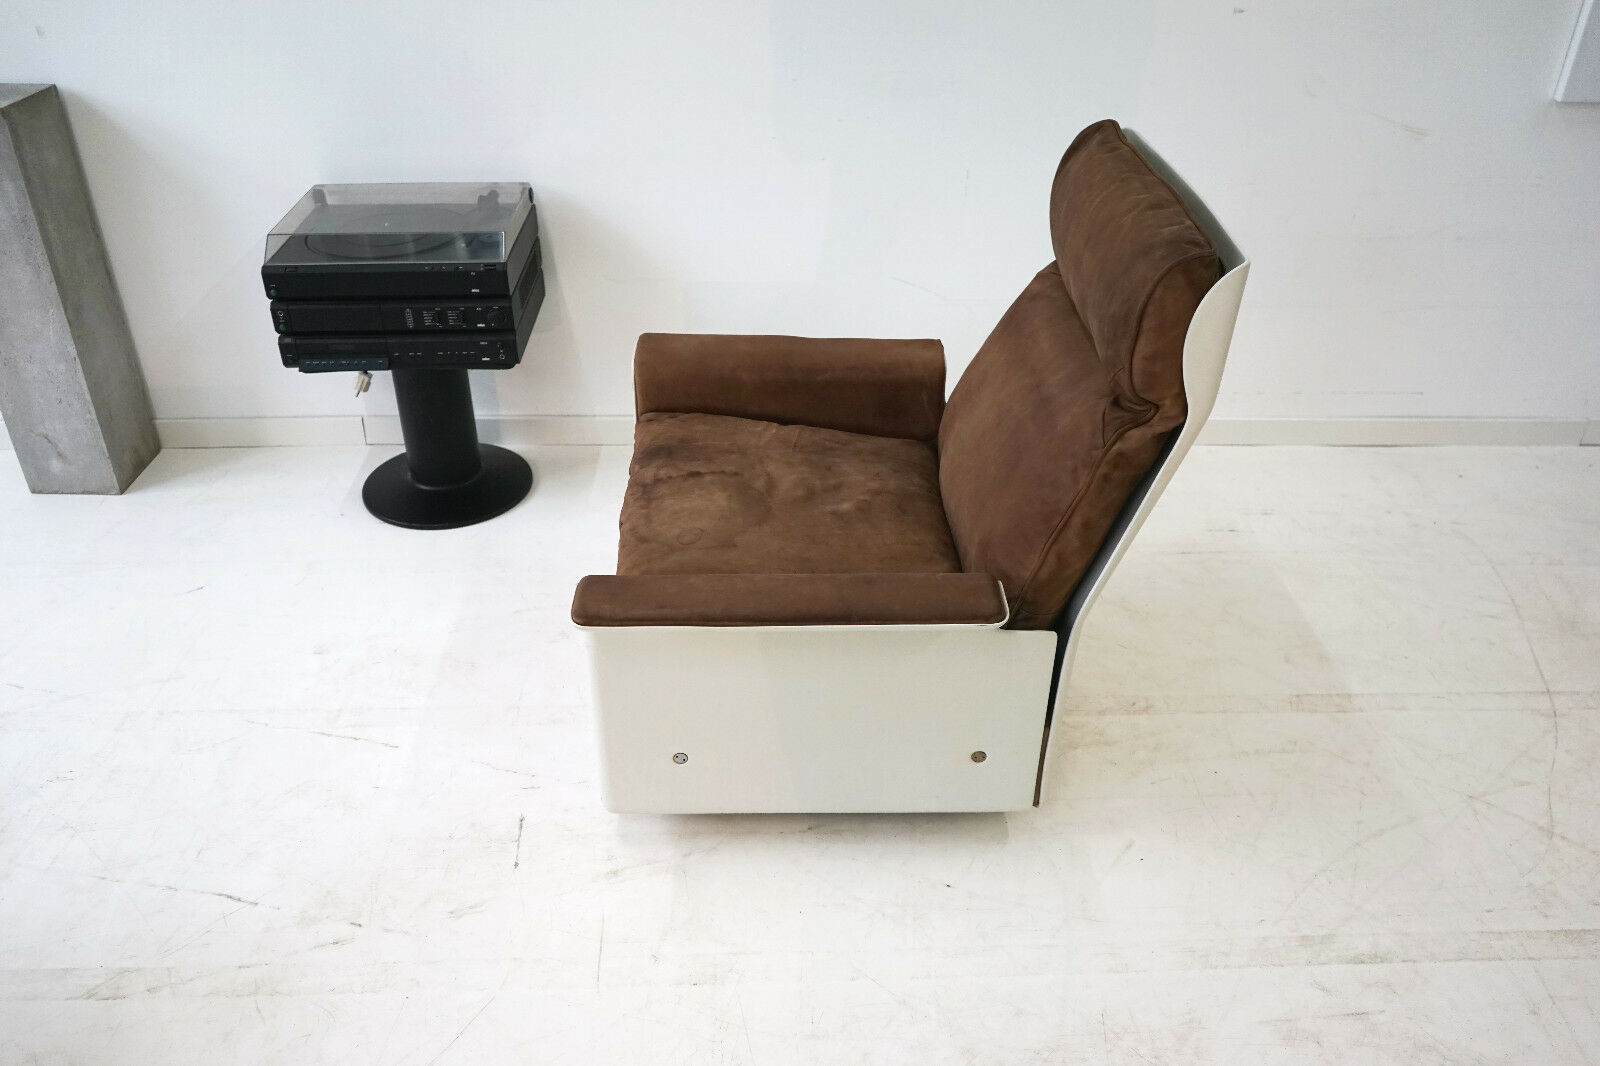 Dieter Rams Sessel Gebraucht Set Of 2 Sessel Lounge Chair By Dieter Rams Vitsoe Rz 62 620 Leder